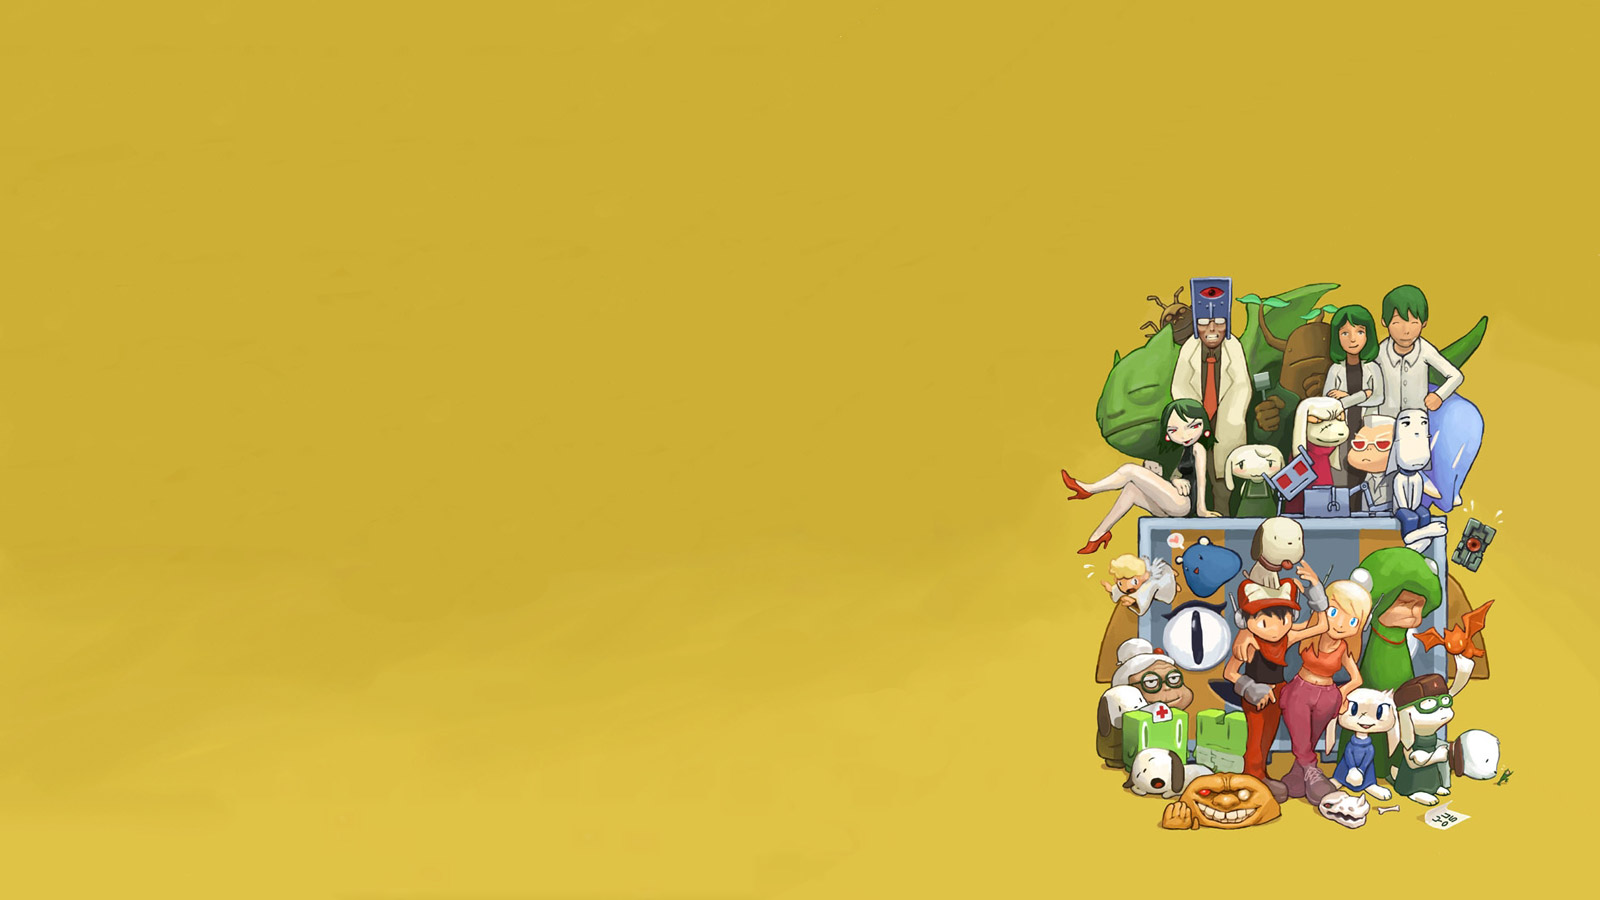 Free Cave Story Wallpaper in 1600x900